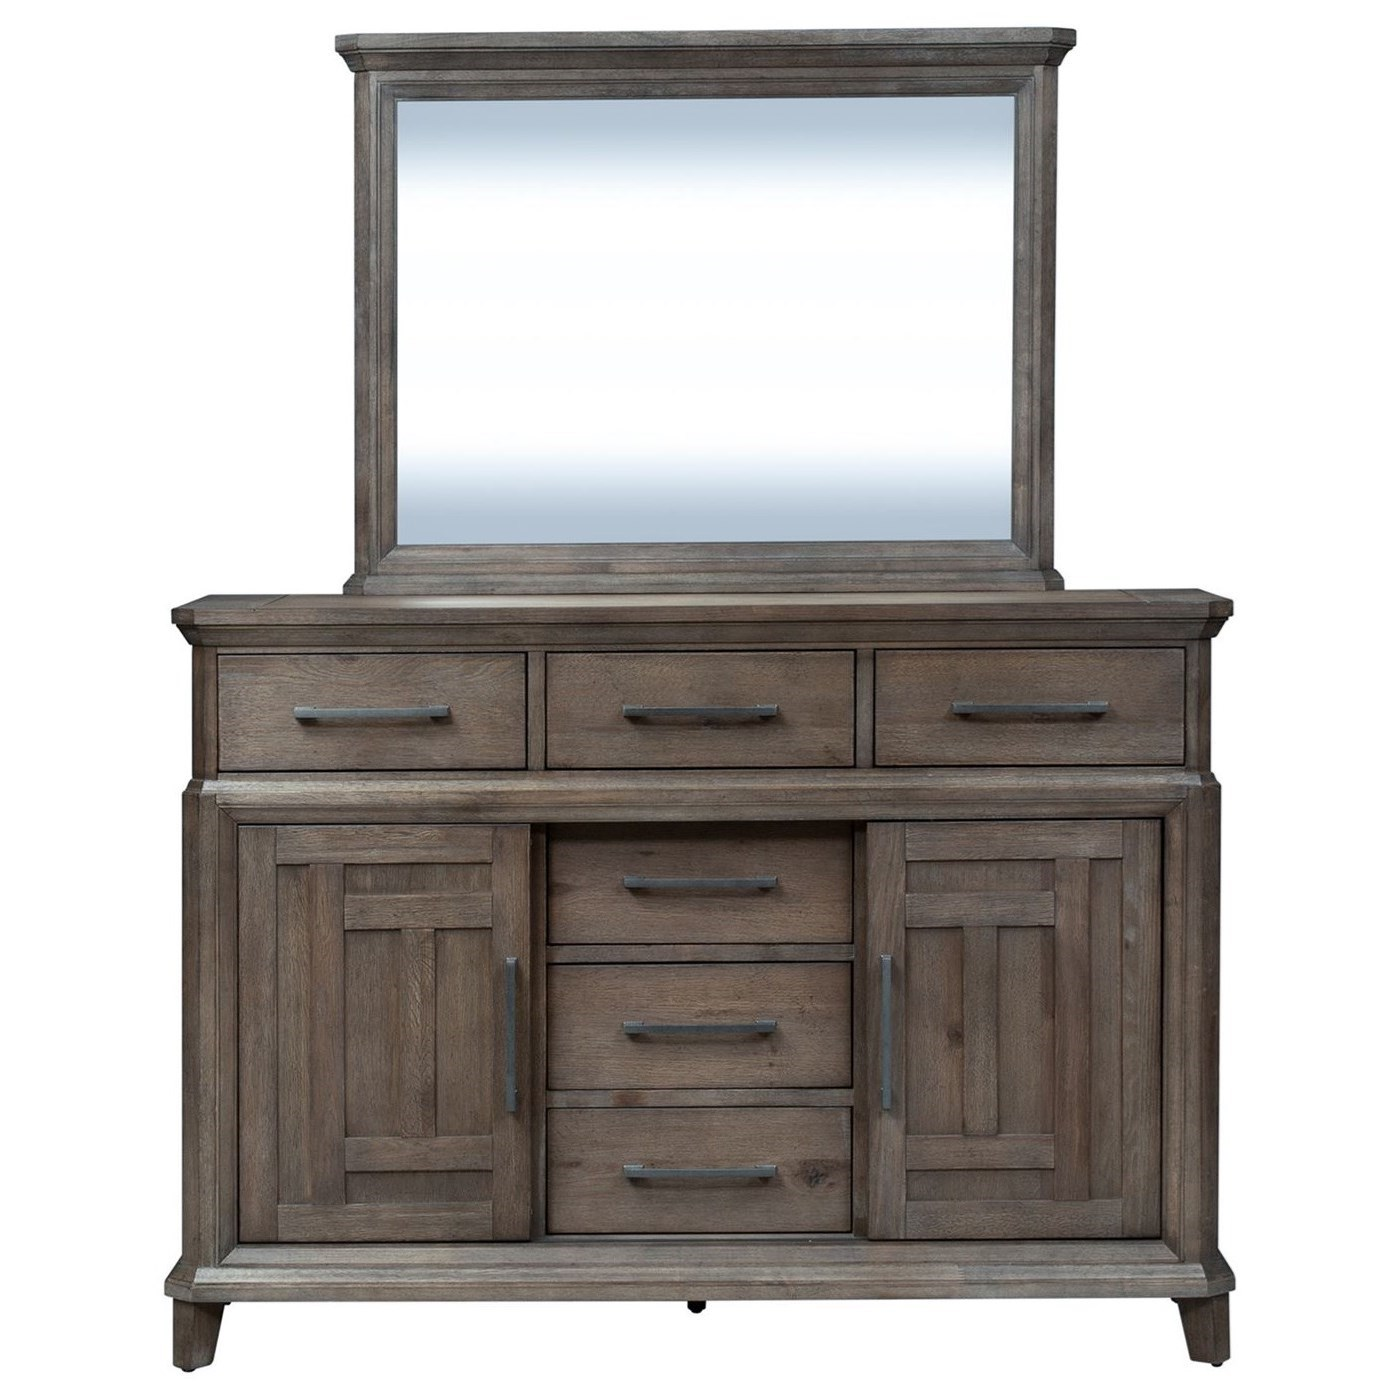 Artisan Prairie 6 Drawer 2 Door Dresser with Mirror by Liberty Furniture at Catalog Outlet